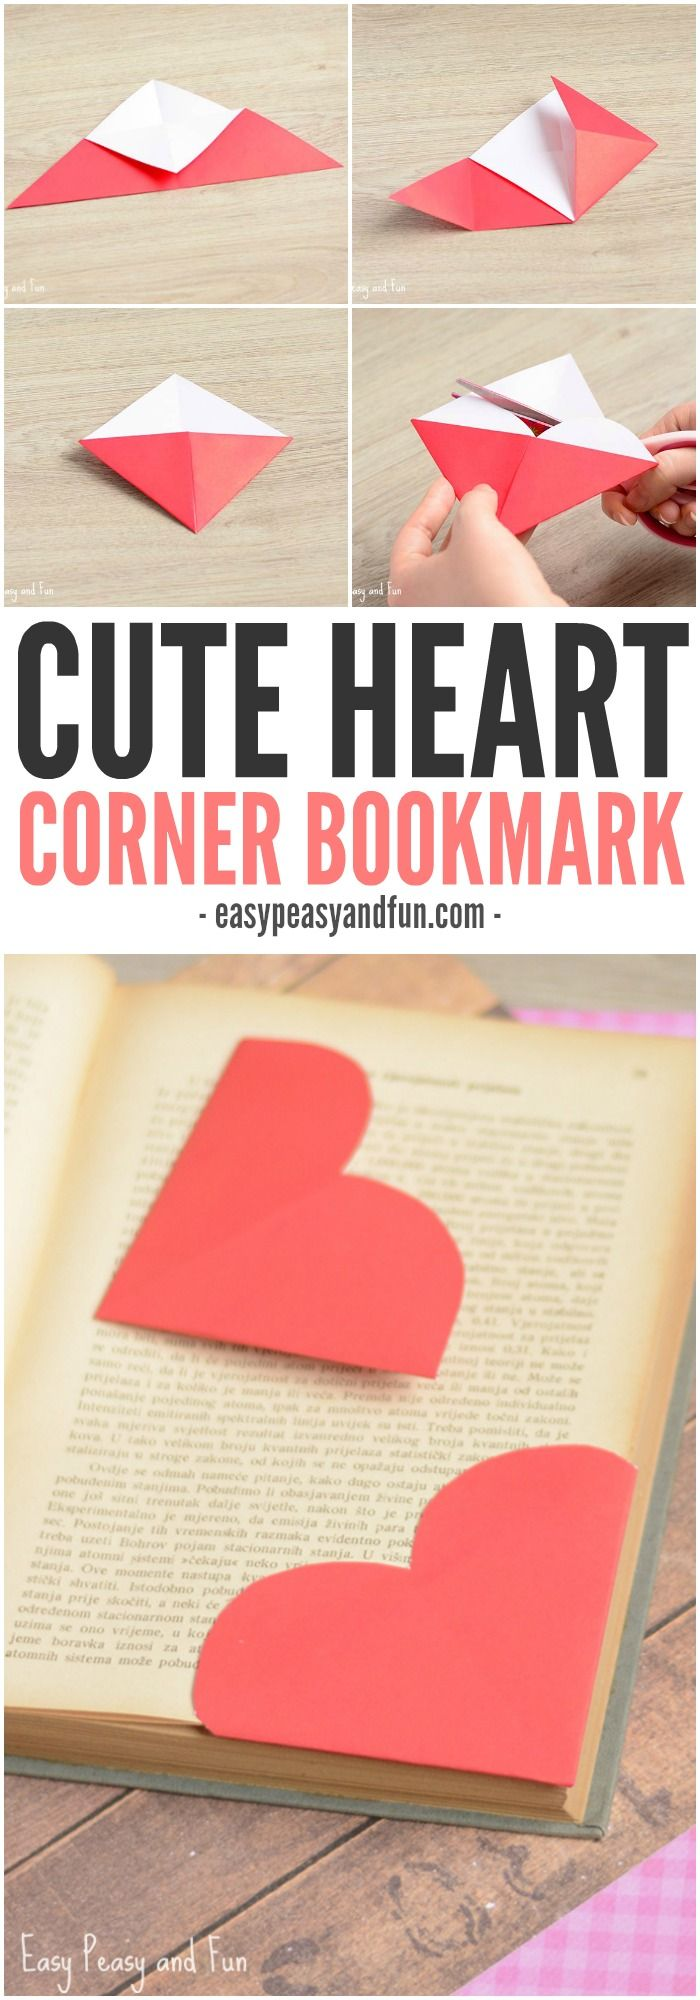 Adorable Heart Corner Bookmarks